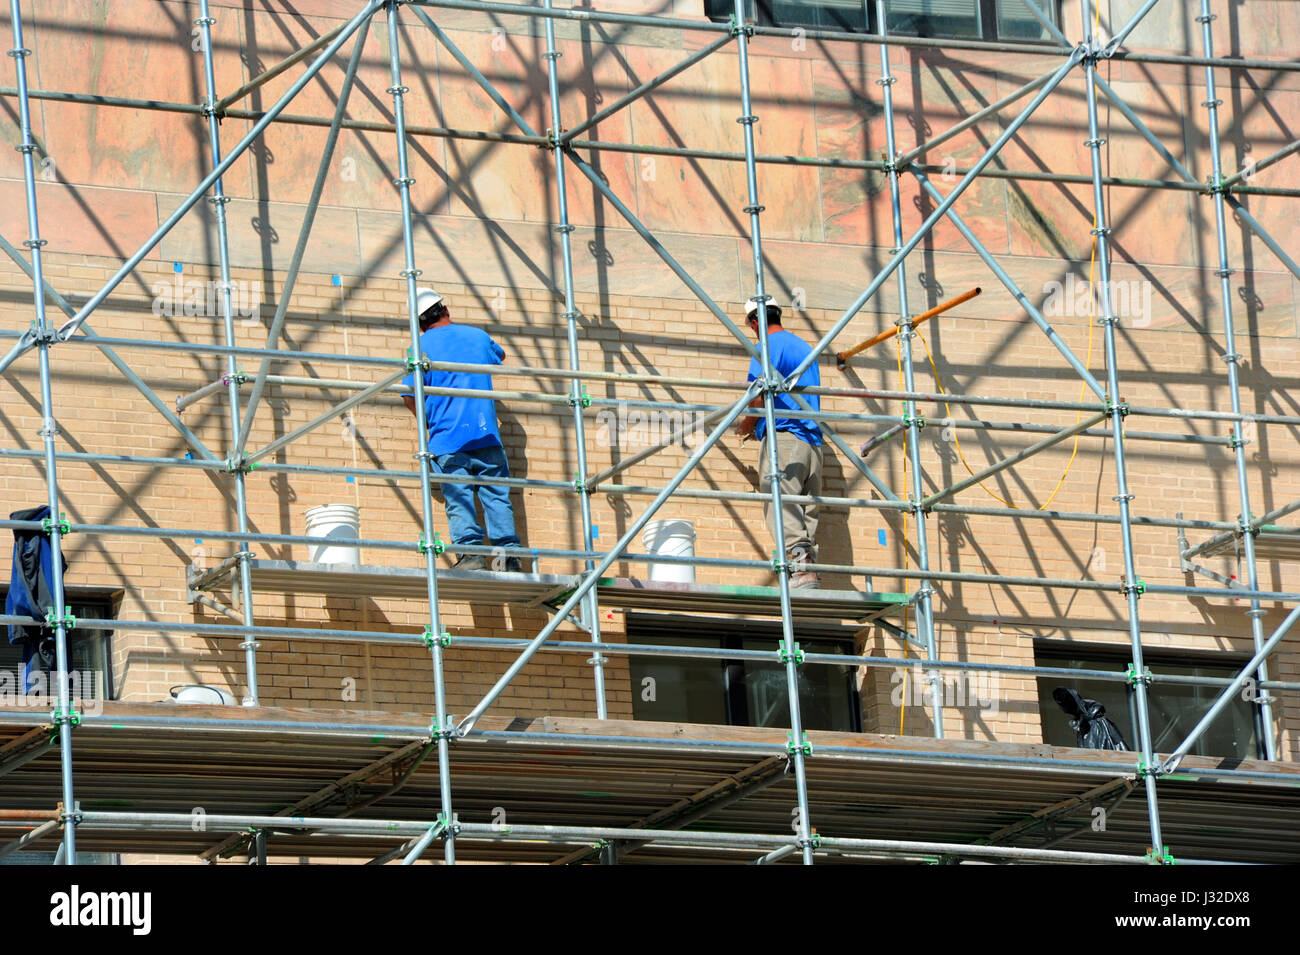 Two men stand on scaffolding and work on exterior repairs on the City Building in downtown, Asheville, North Carolina. - Stock Image